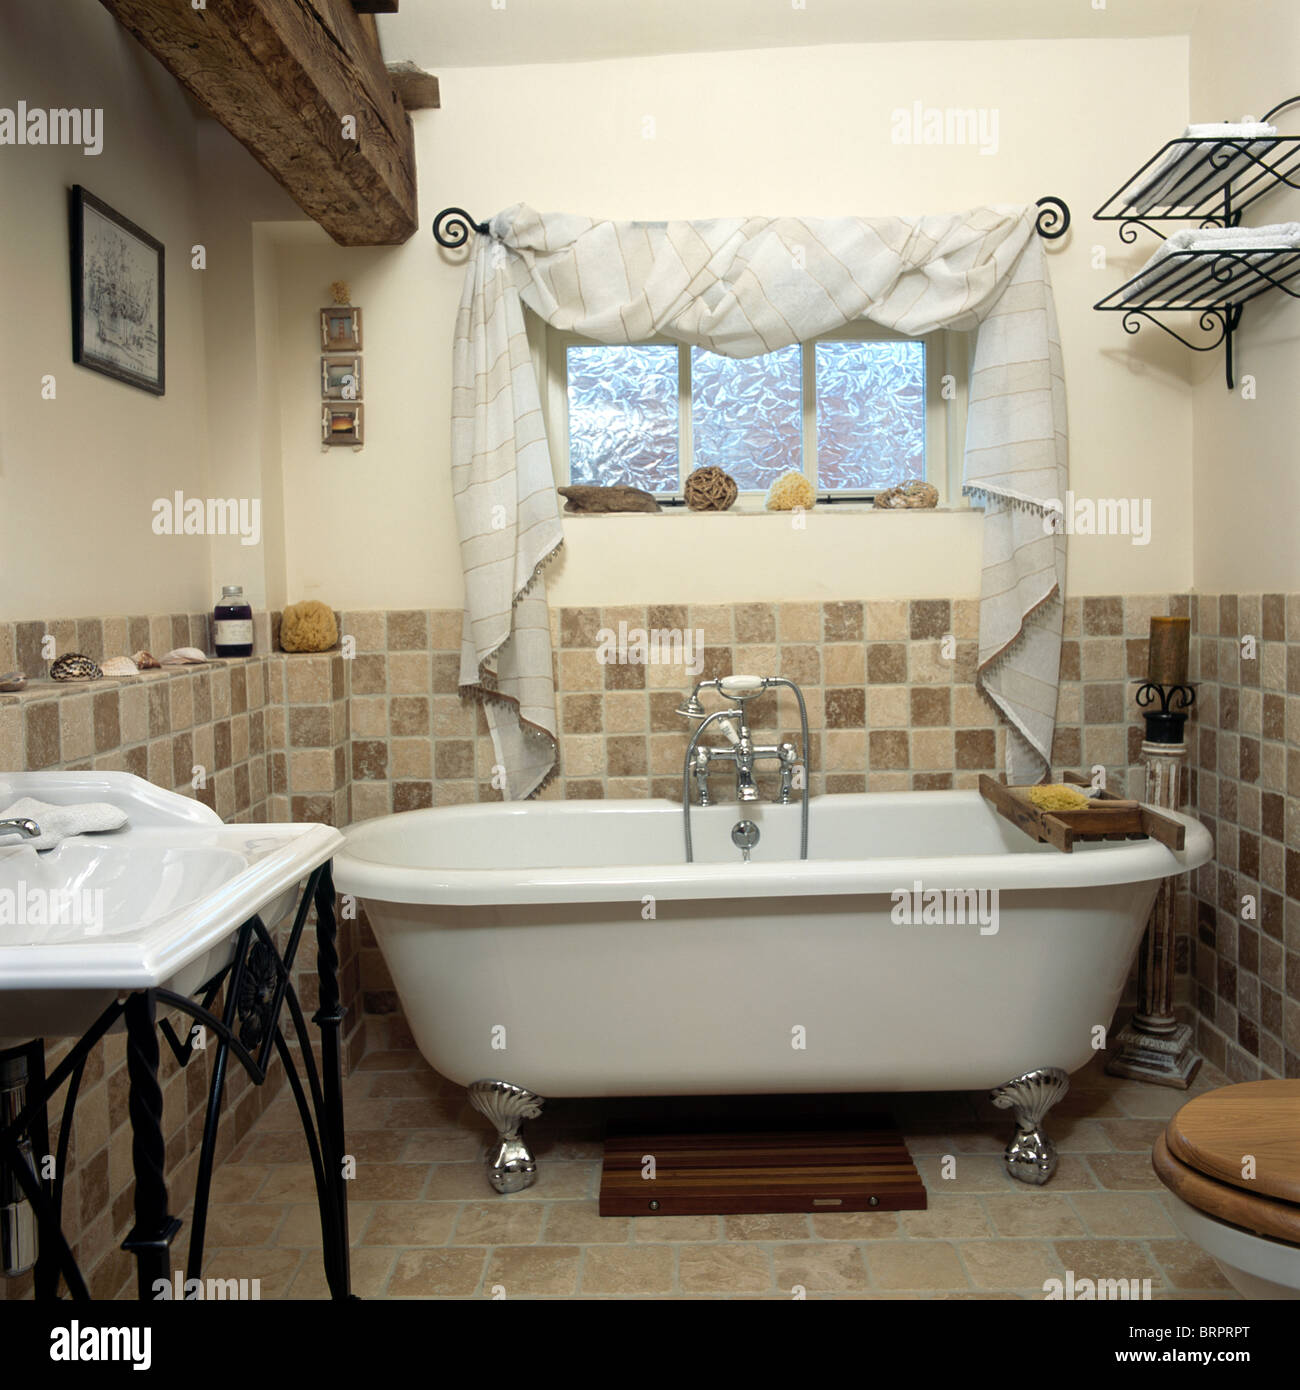 Roll Top Bath Below Window With Draped White Fabric On Pole In Country  Bathroom With Dado Height Tiled Walls Part 63